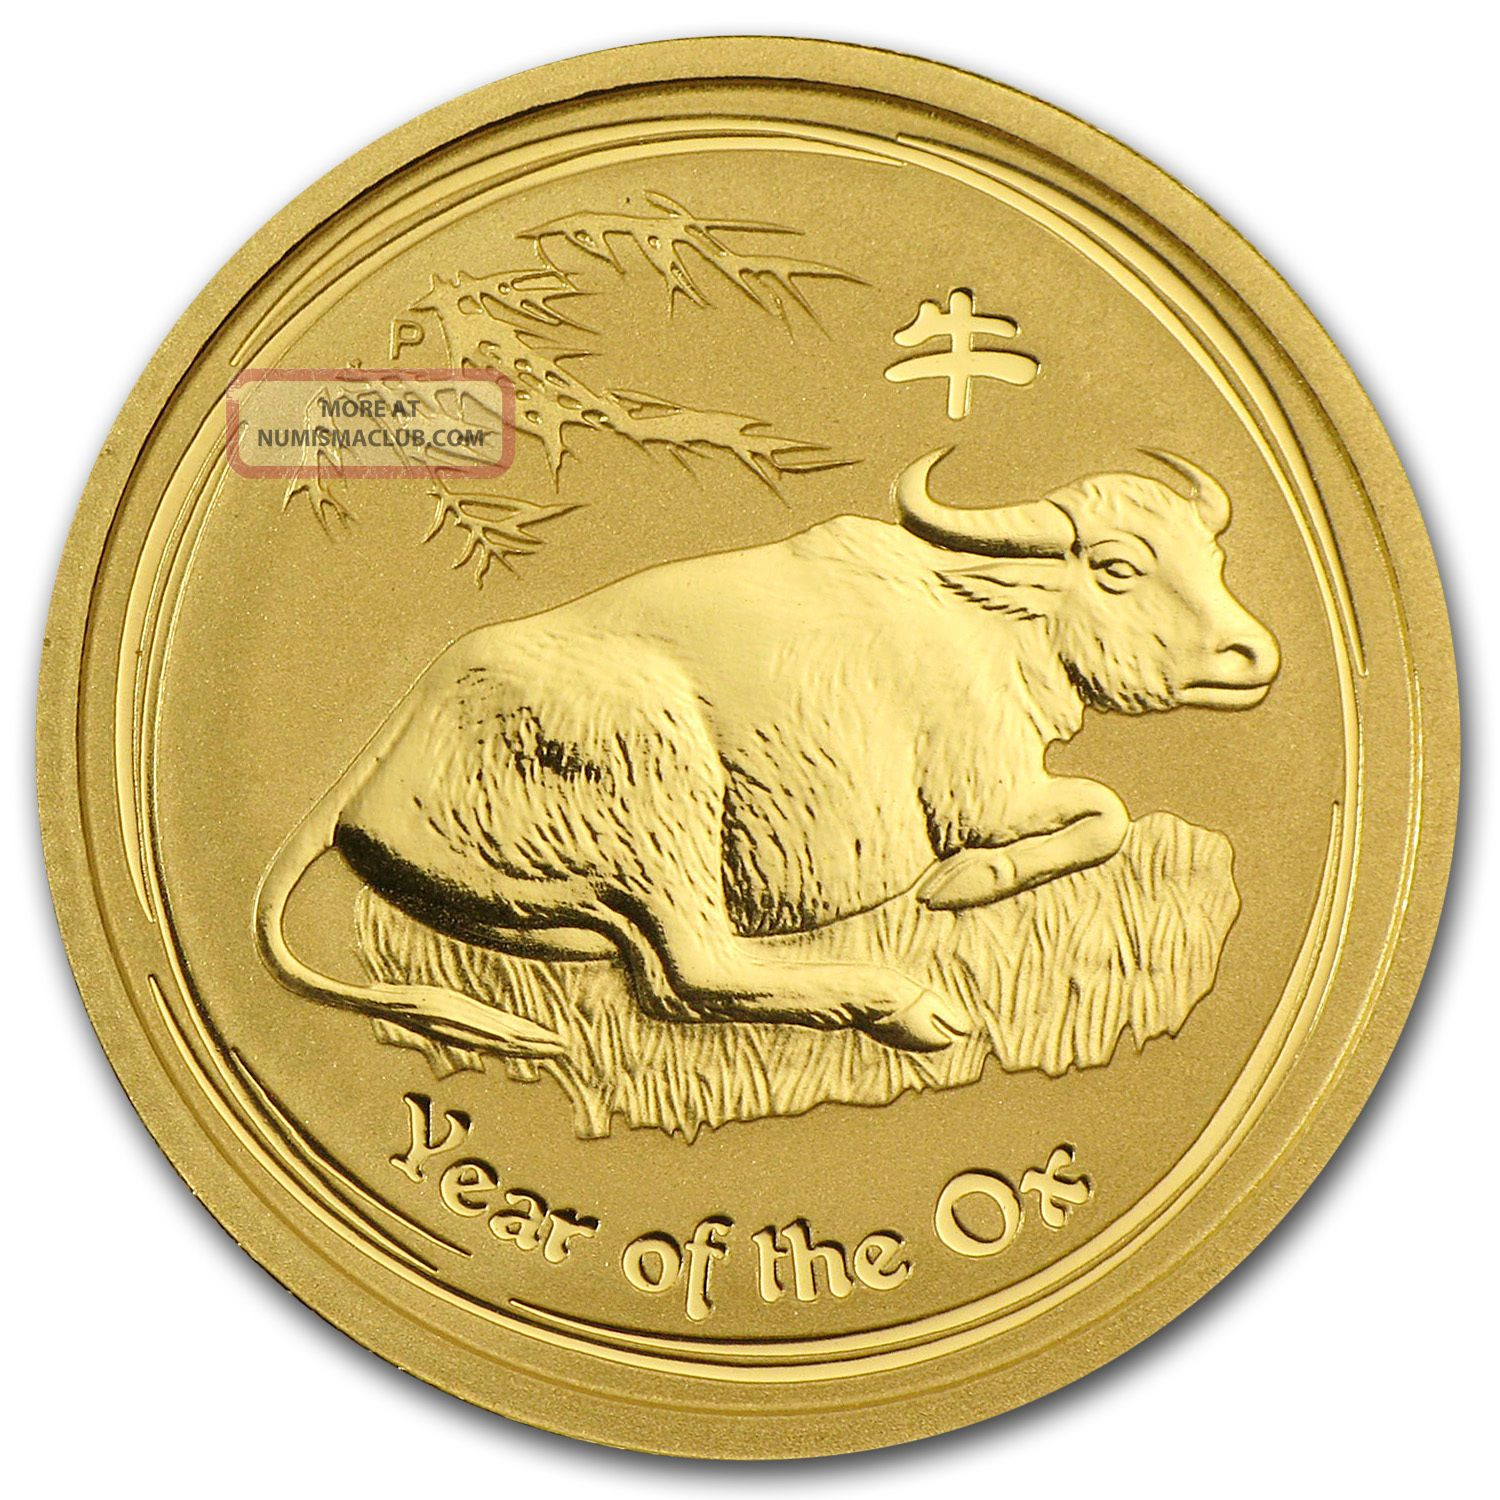 2009 1/4 Oz Gold Australian Perth Lunar Year Of The Ox Coin - Sku 43917 Gold photo